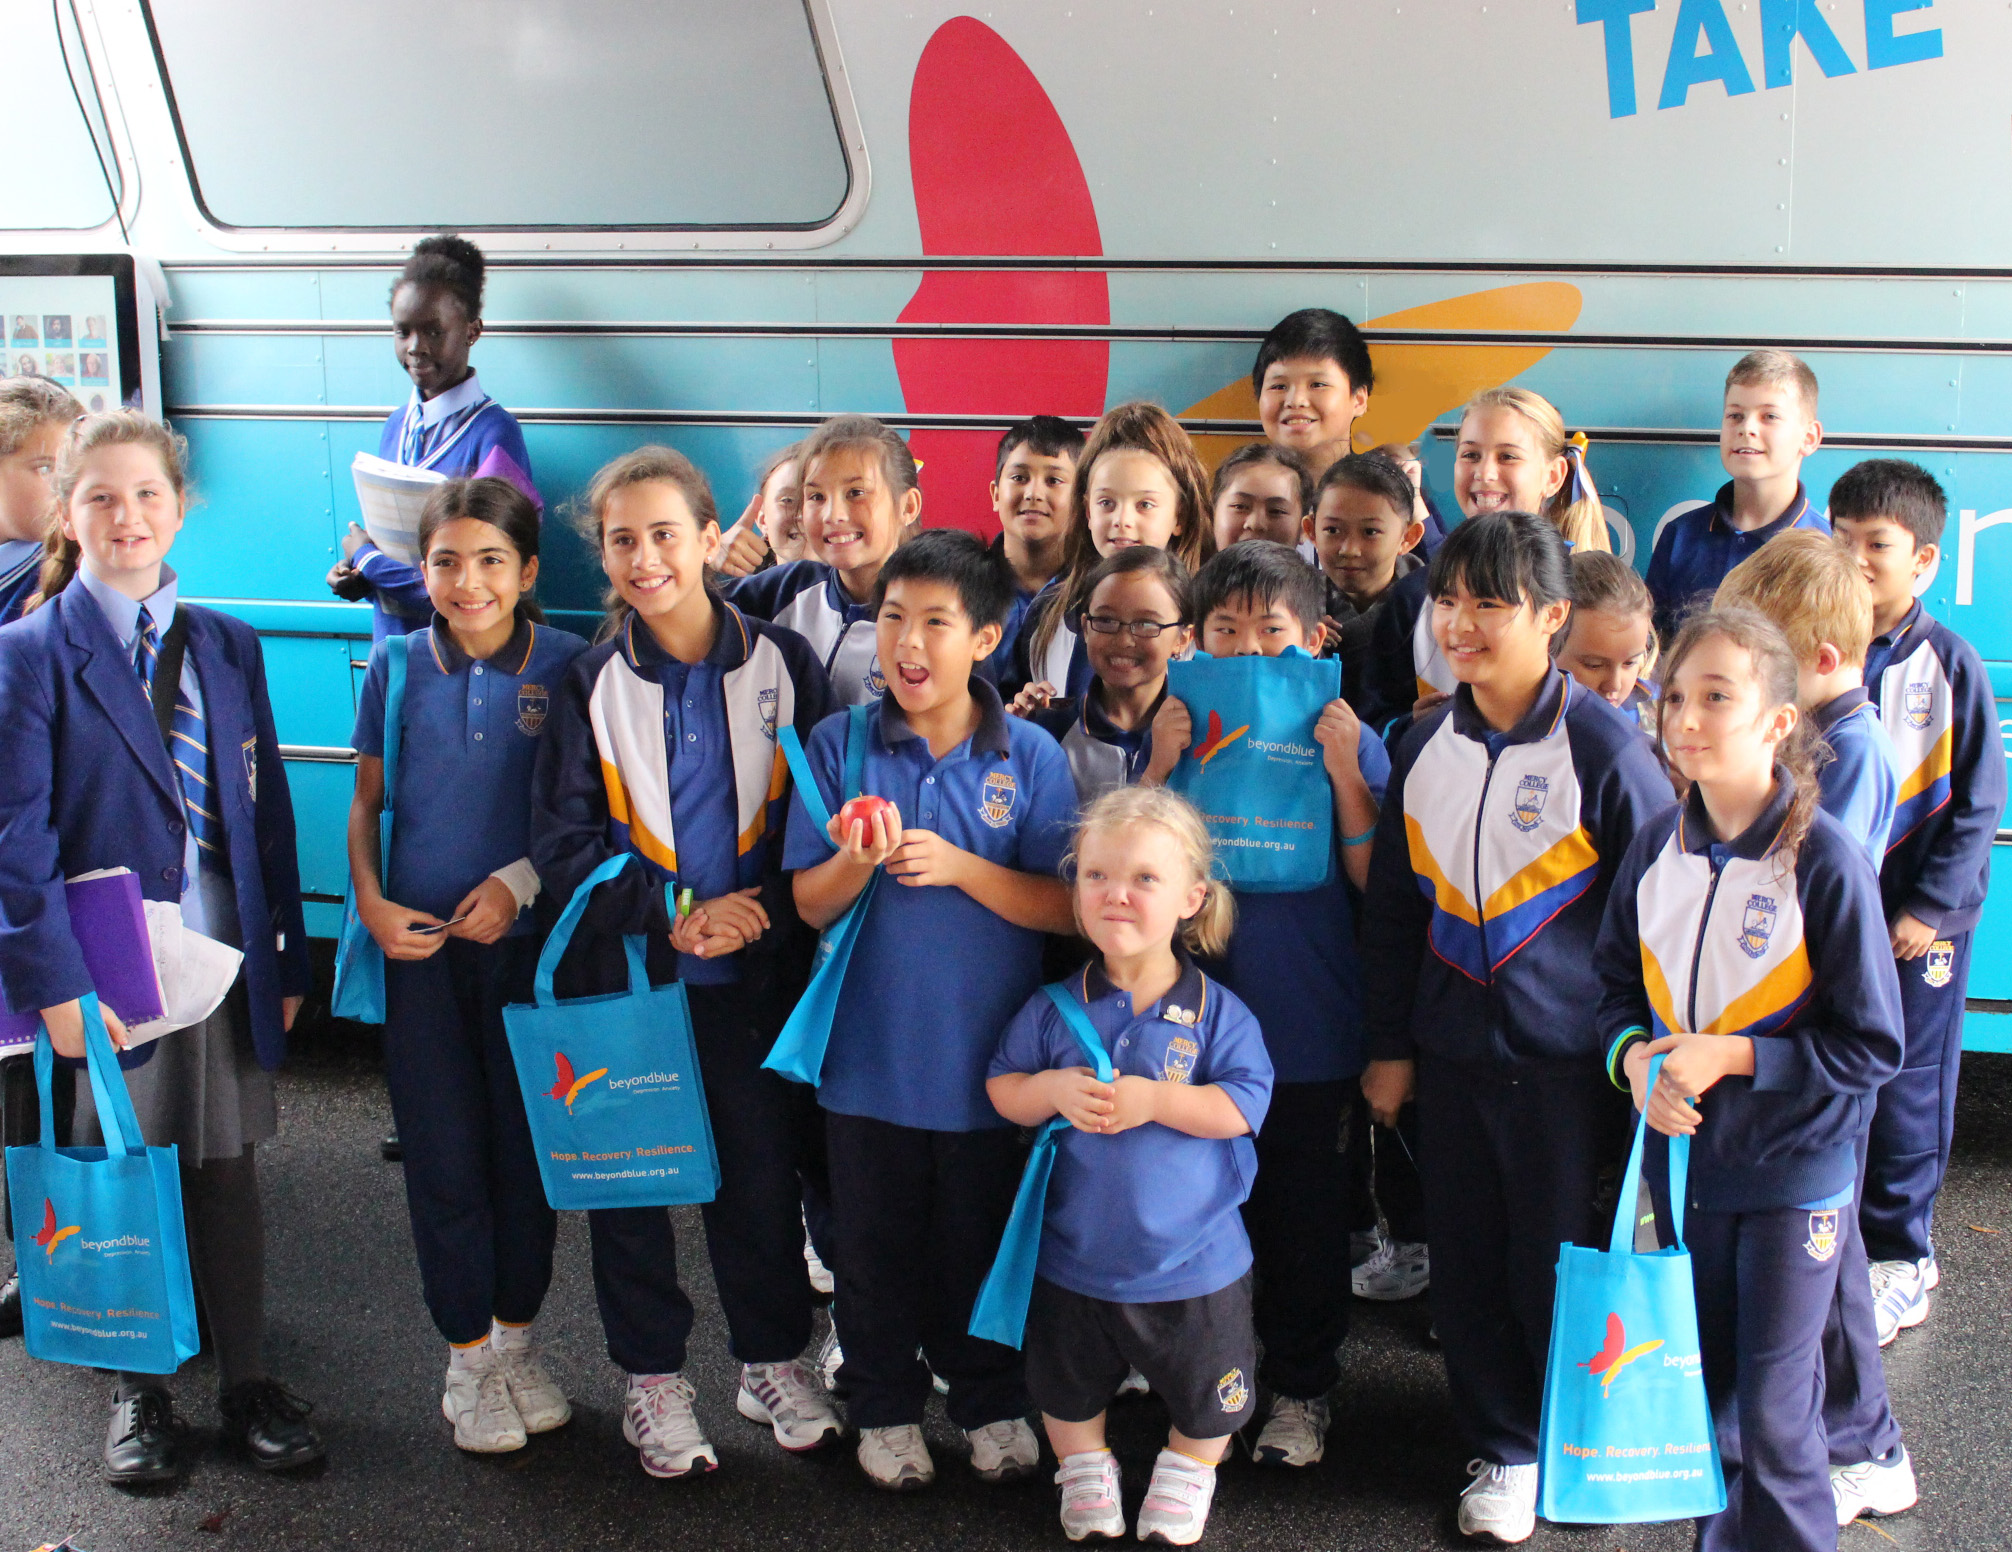 Students at Mercy College were impressed by the big blue bus.